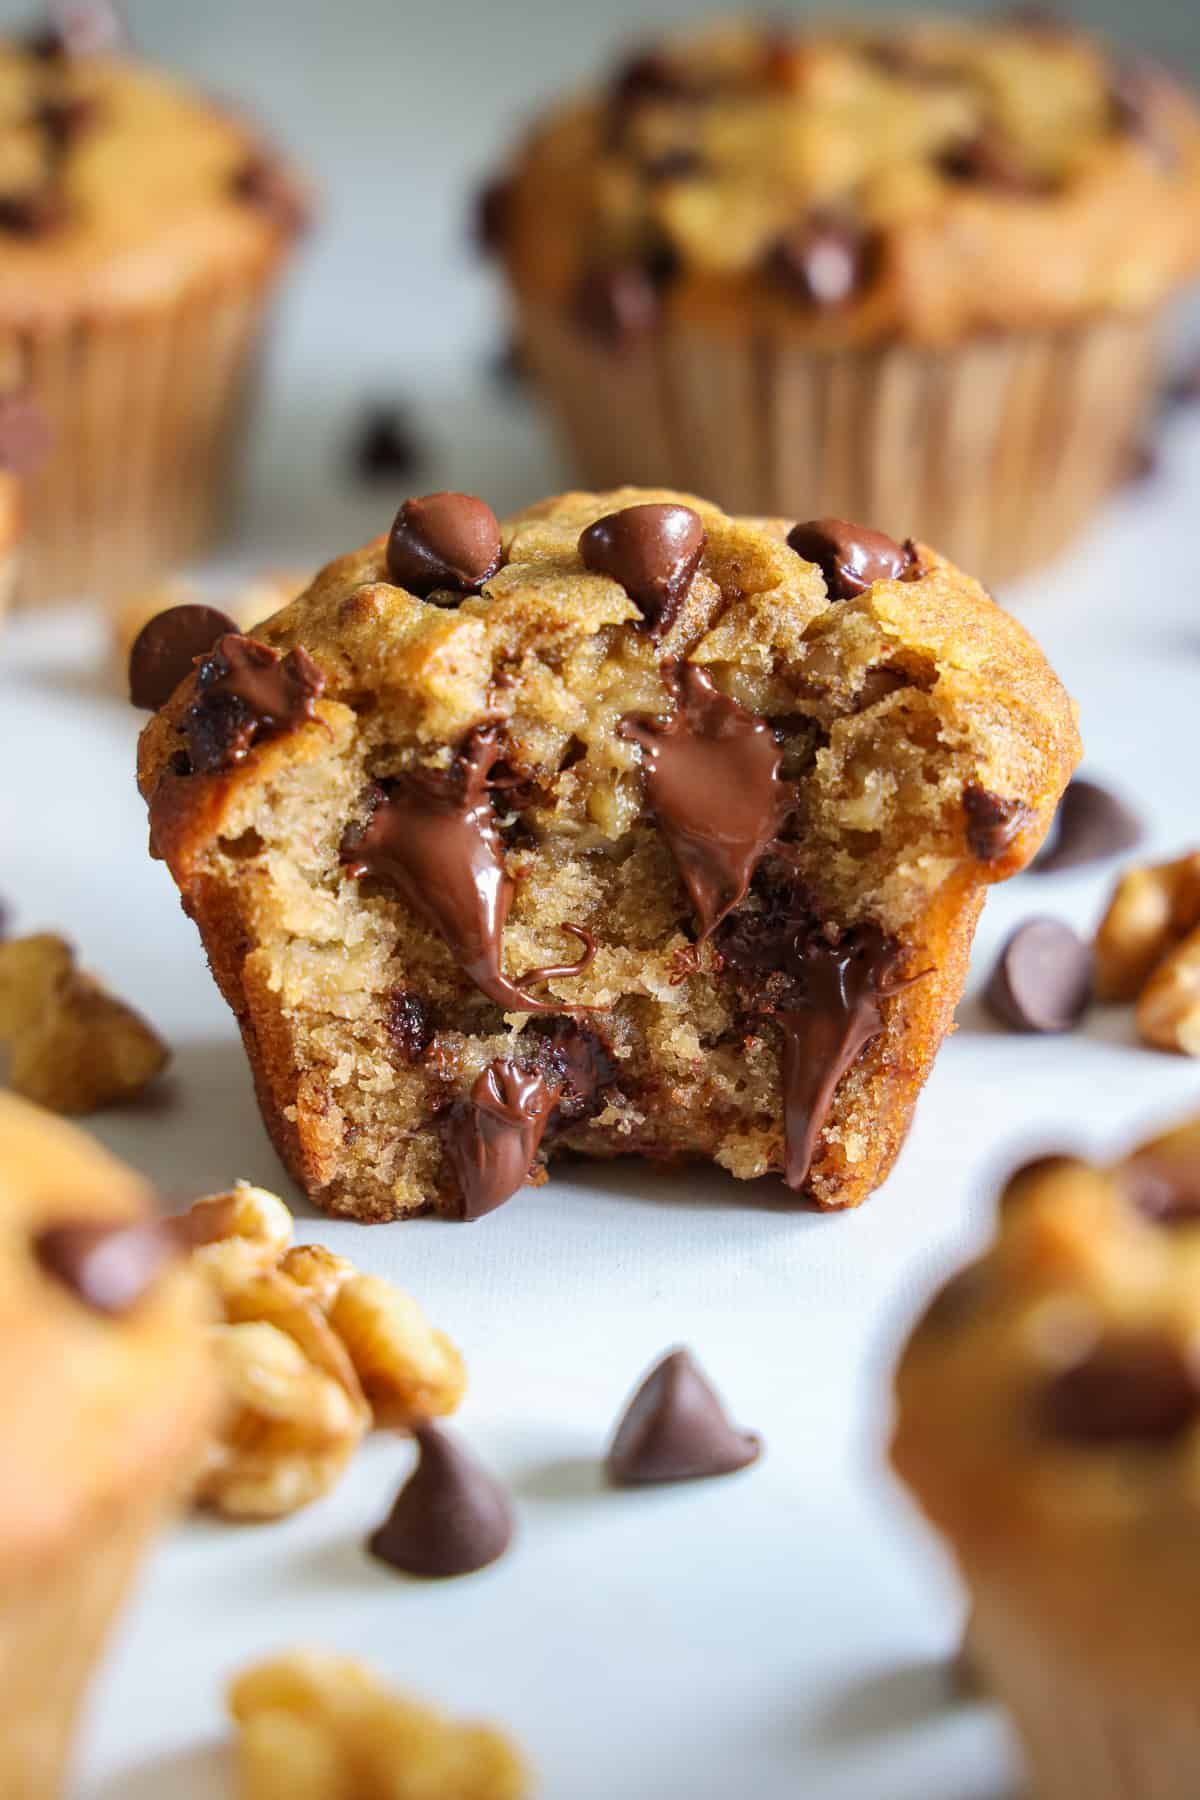 Close up of a Banana Chocolate Chip Muffin missing a bite, with melting chocolate visible, and more muffins in the background.